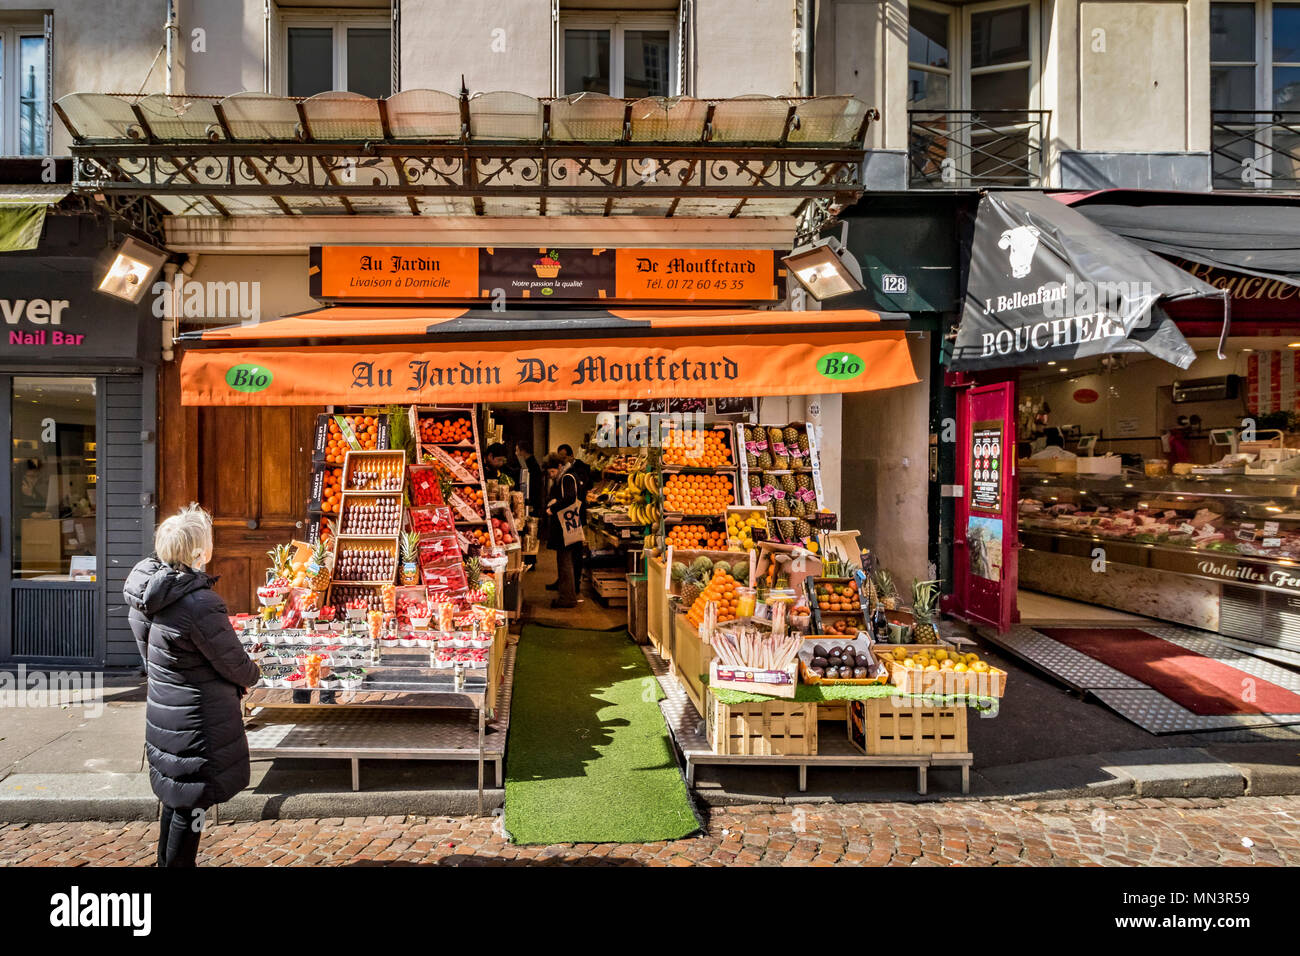 A woman looking at  Au Jardin De Mouffetard ,a fruit and vegetable shop on Rue Mouffetard, Paris, France - Stock Image